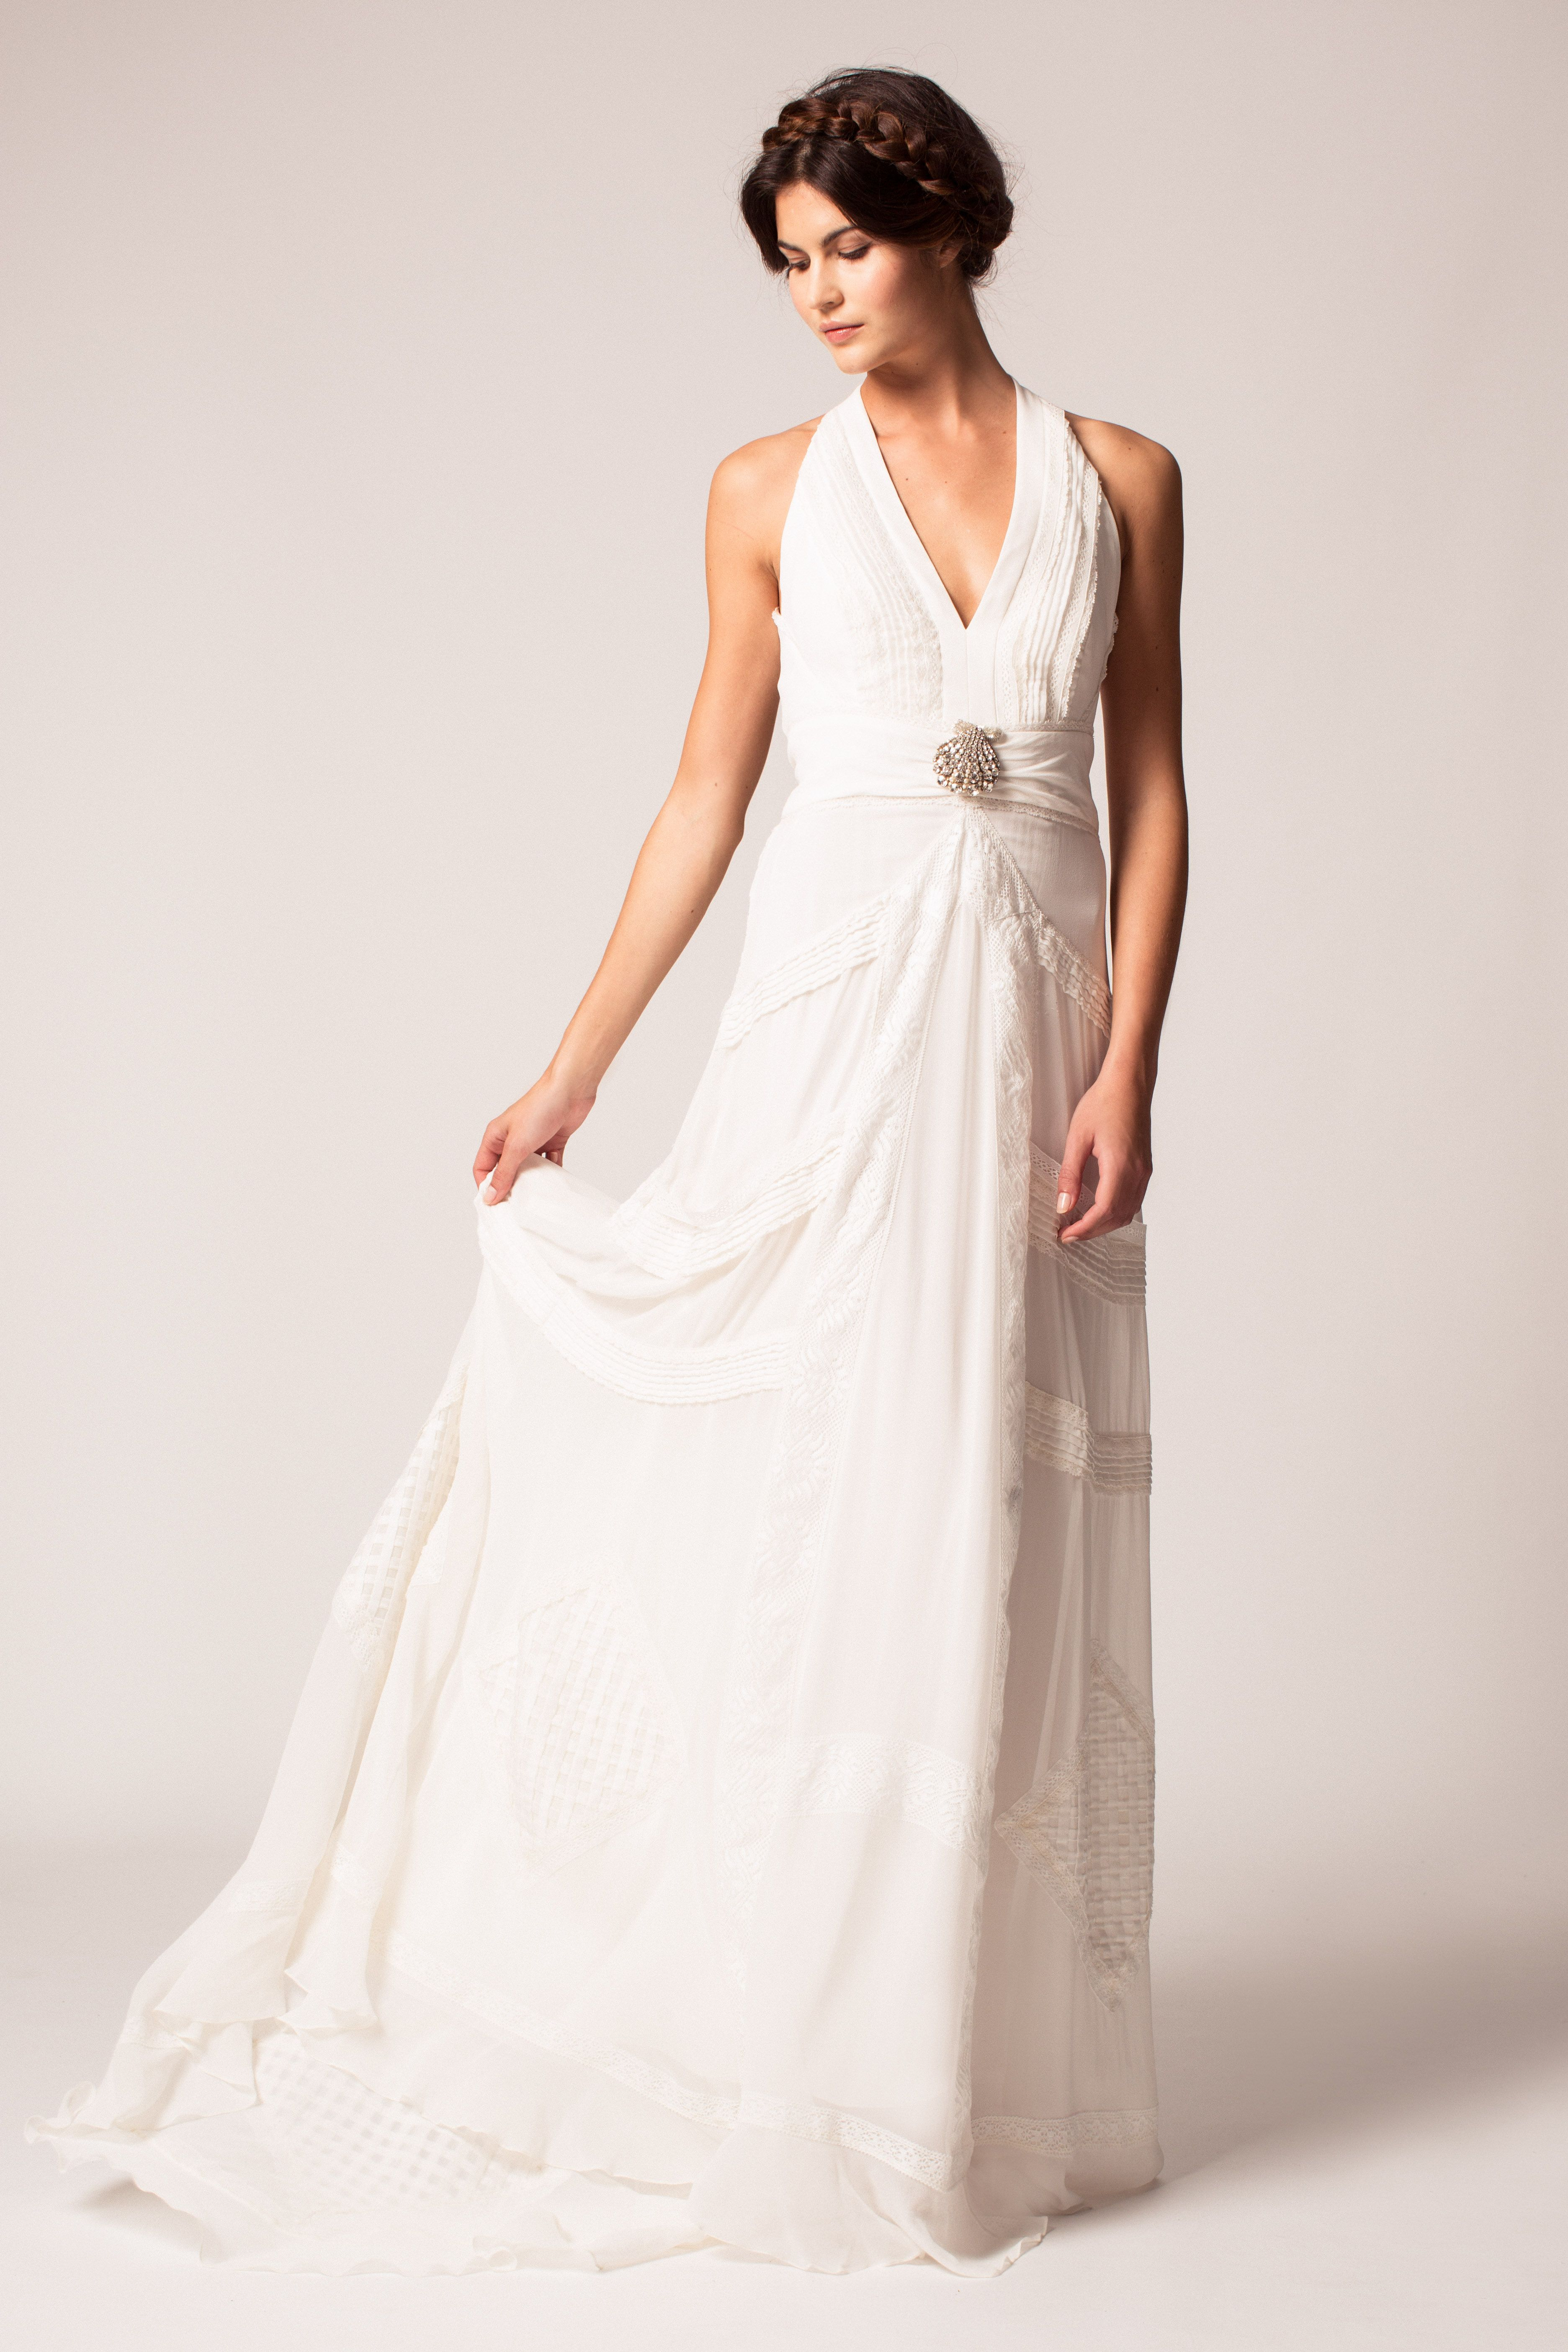 The Temperley Bridal Winter 2015 Collection - Chia Dress #wedding ...